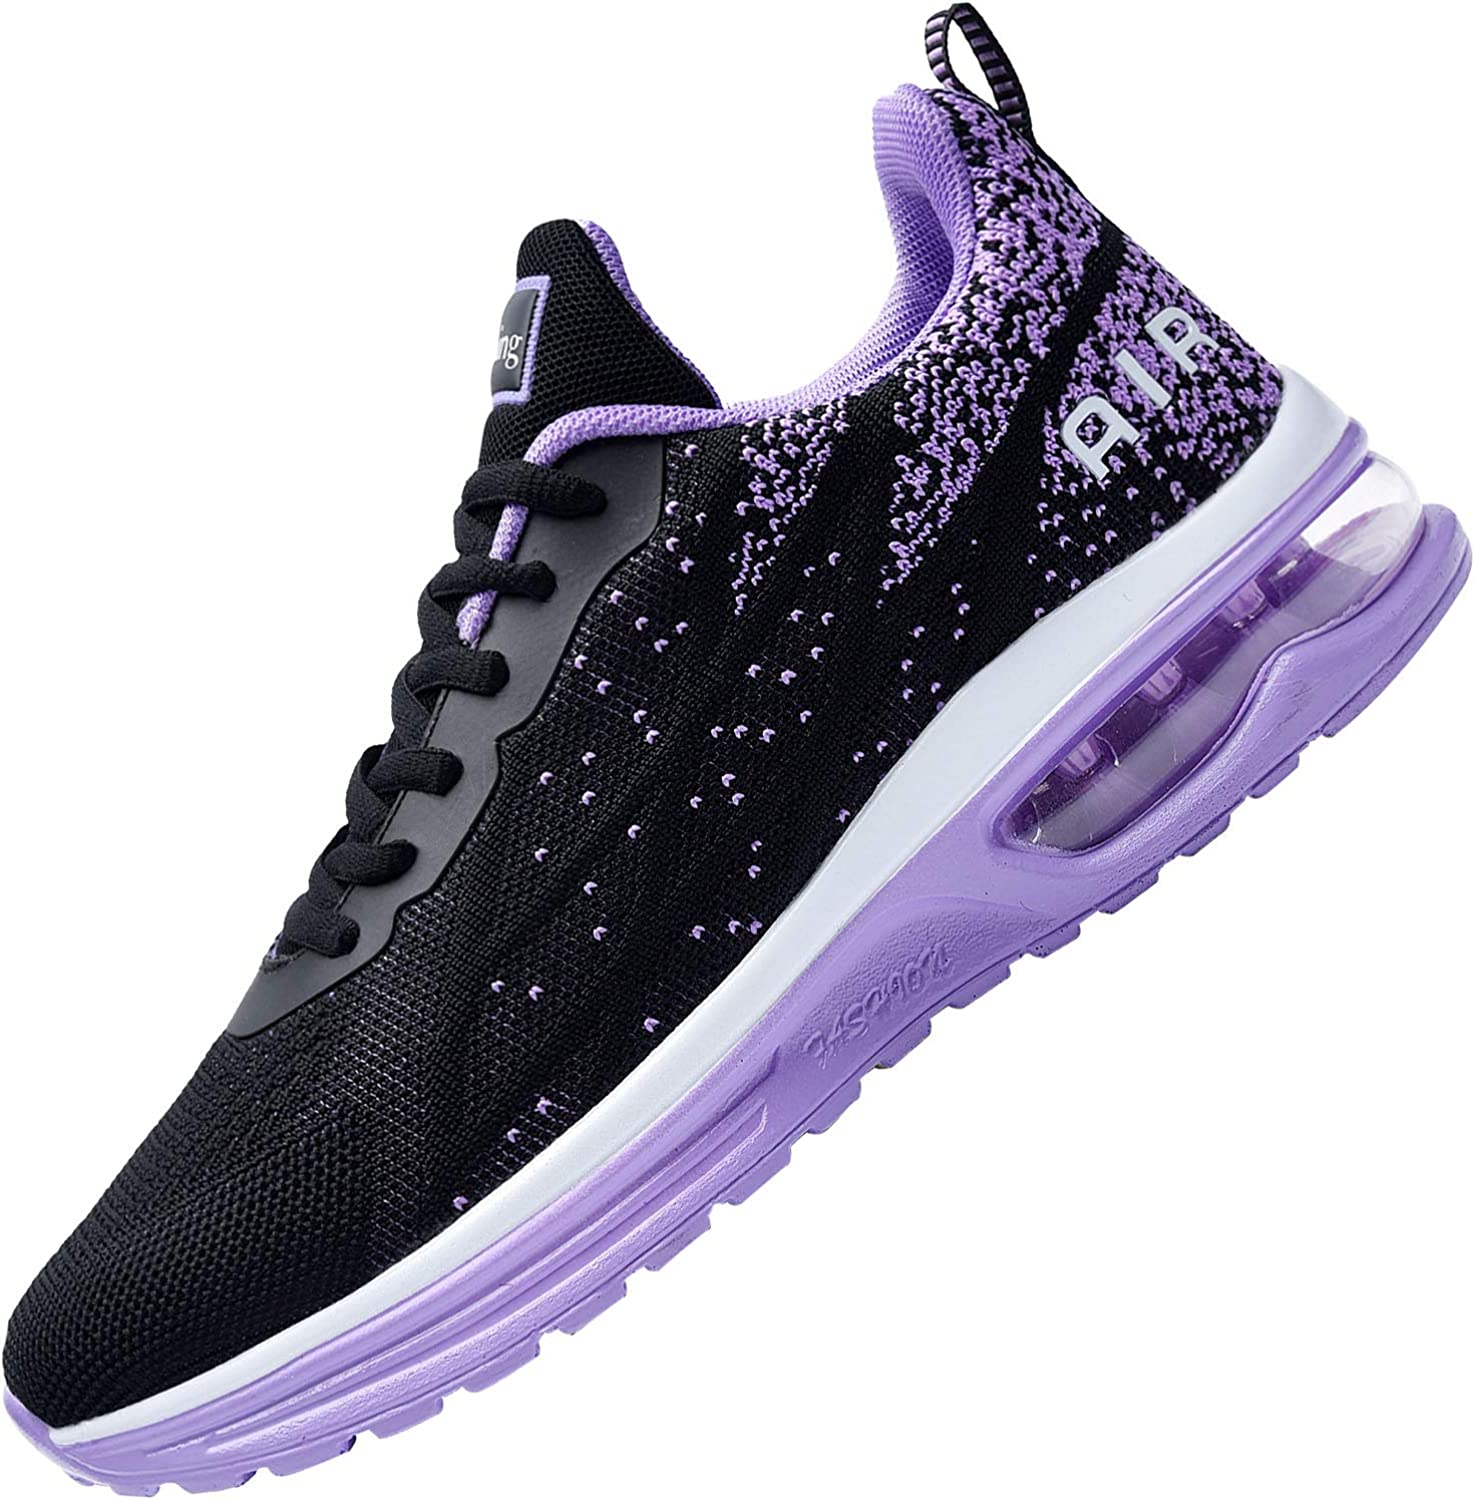 AUPERF Women's Award-winning store Air Selling Running Shoes Breathable Walking Lightweight